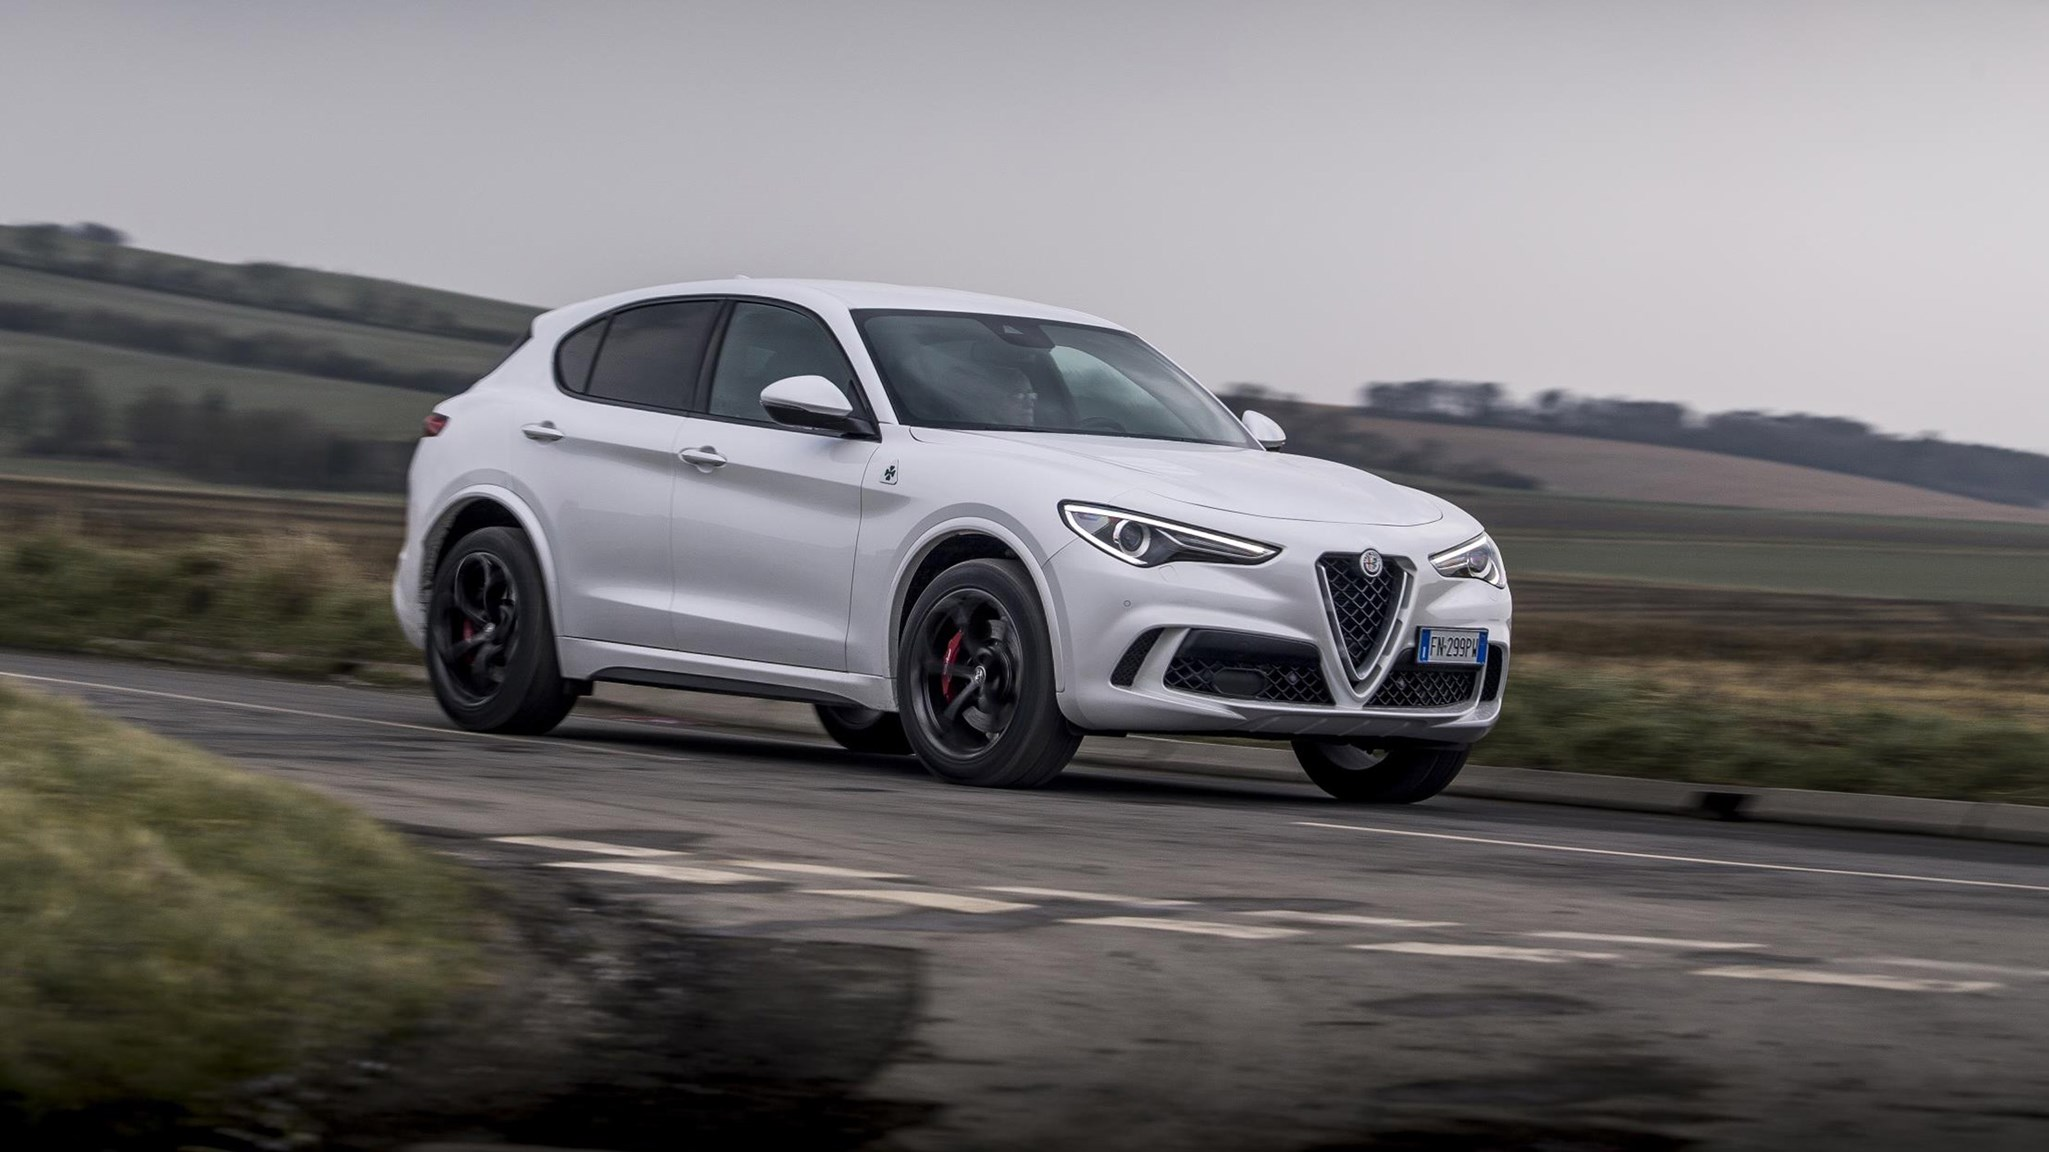 Alfa Romeo Stelvio Business >> Alfa Romeo Stelvio Quadrifoglio (2018) review: a mixed bag | CAR Magazine